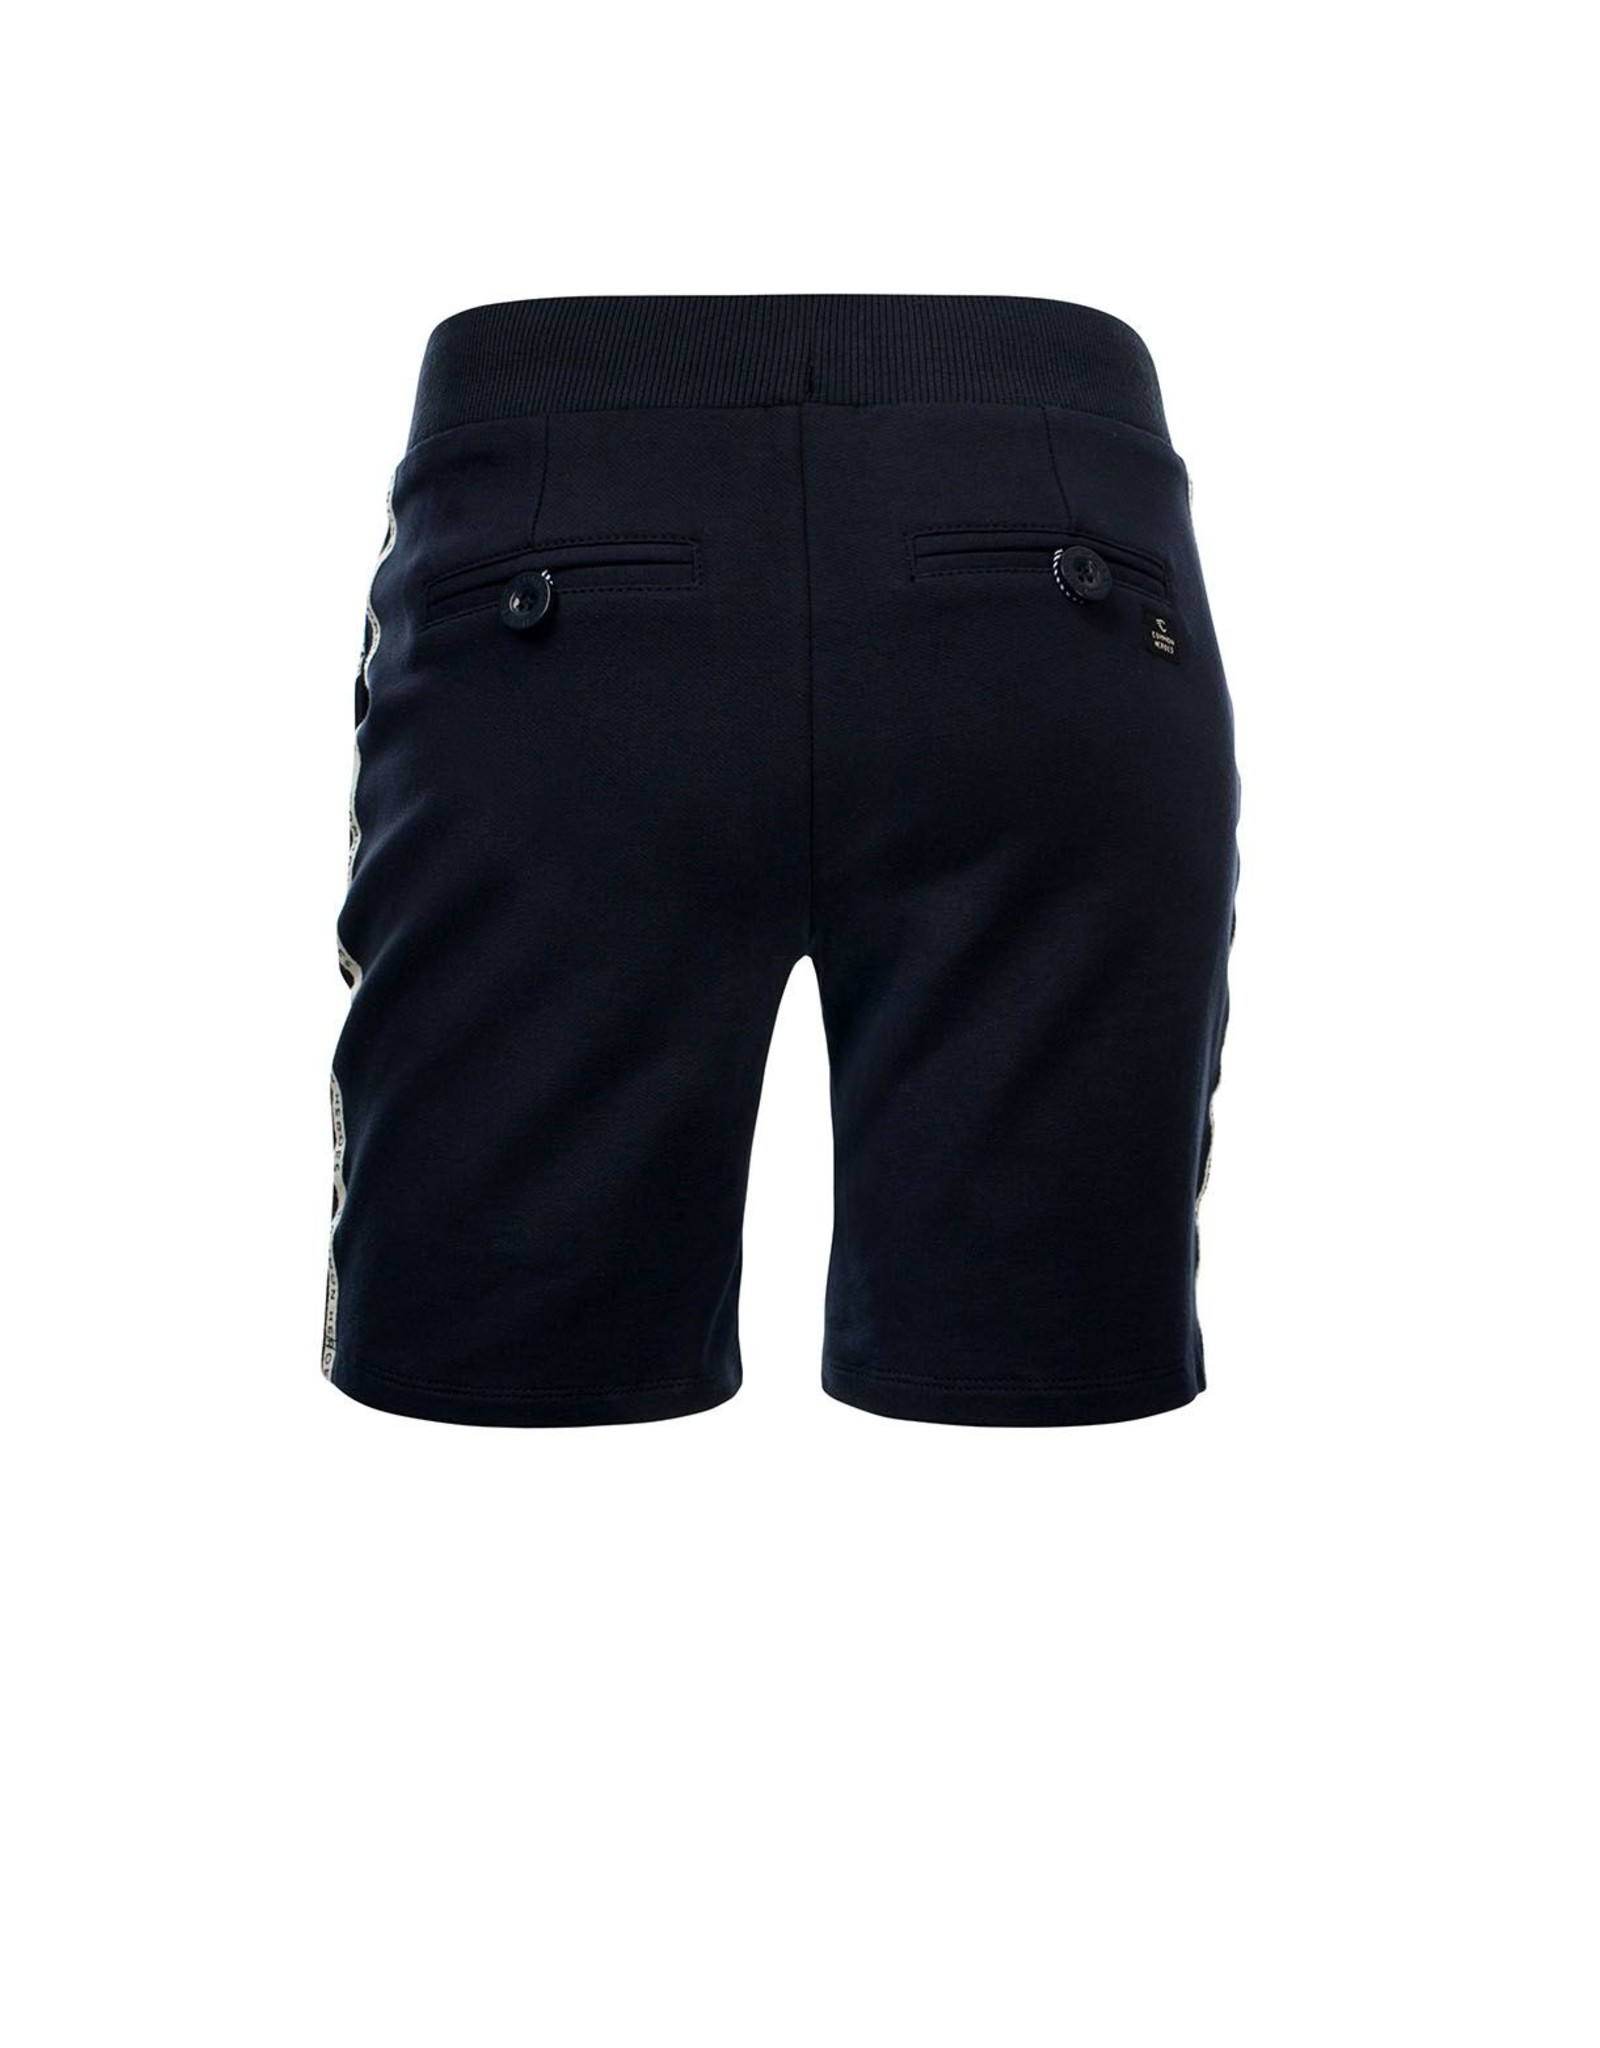 Common Heroes BO sweat shorts with lycra